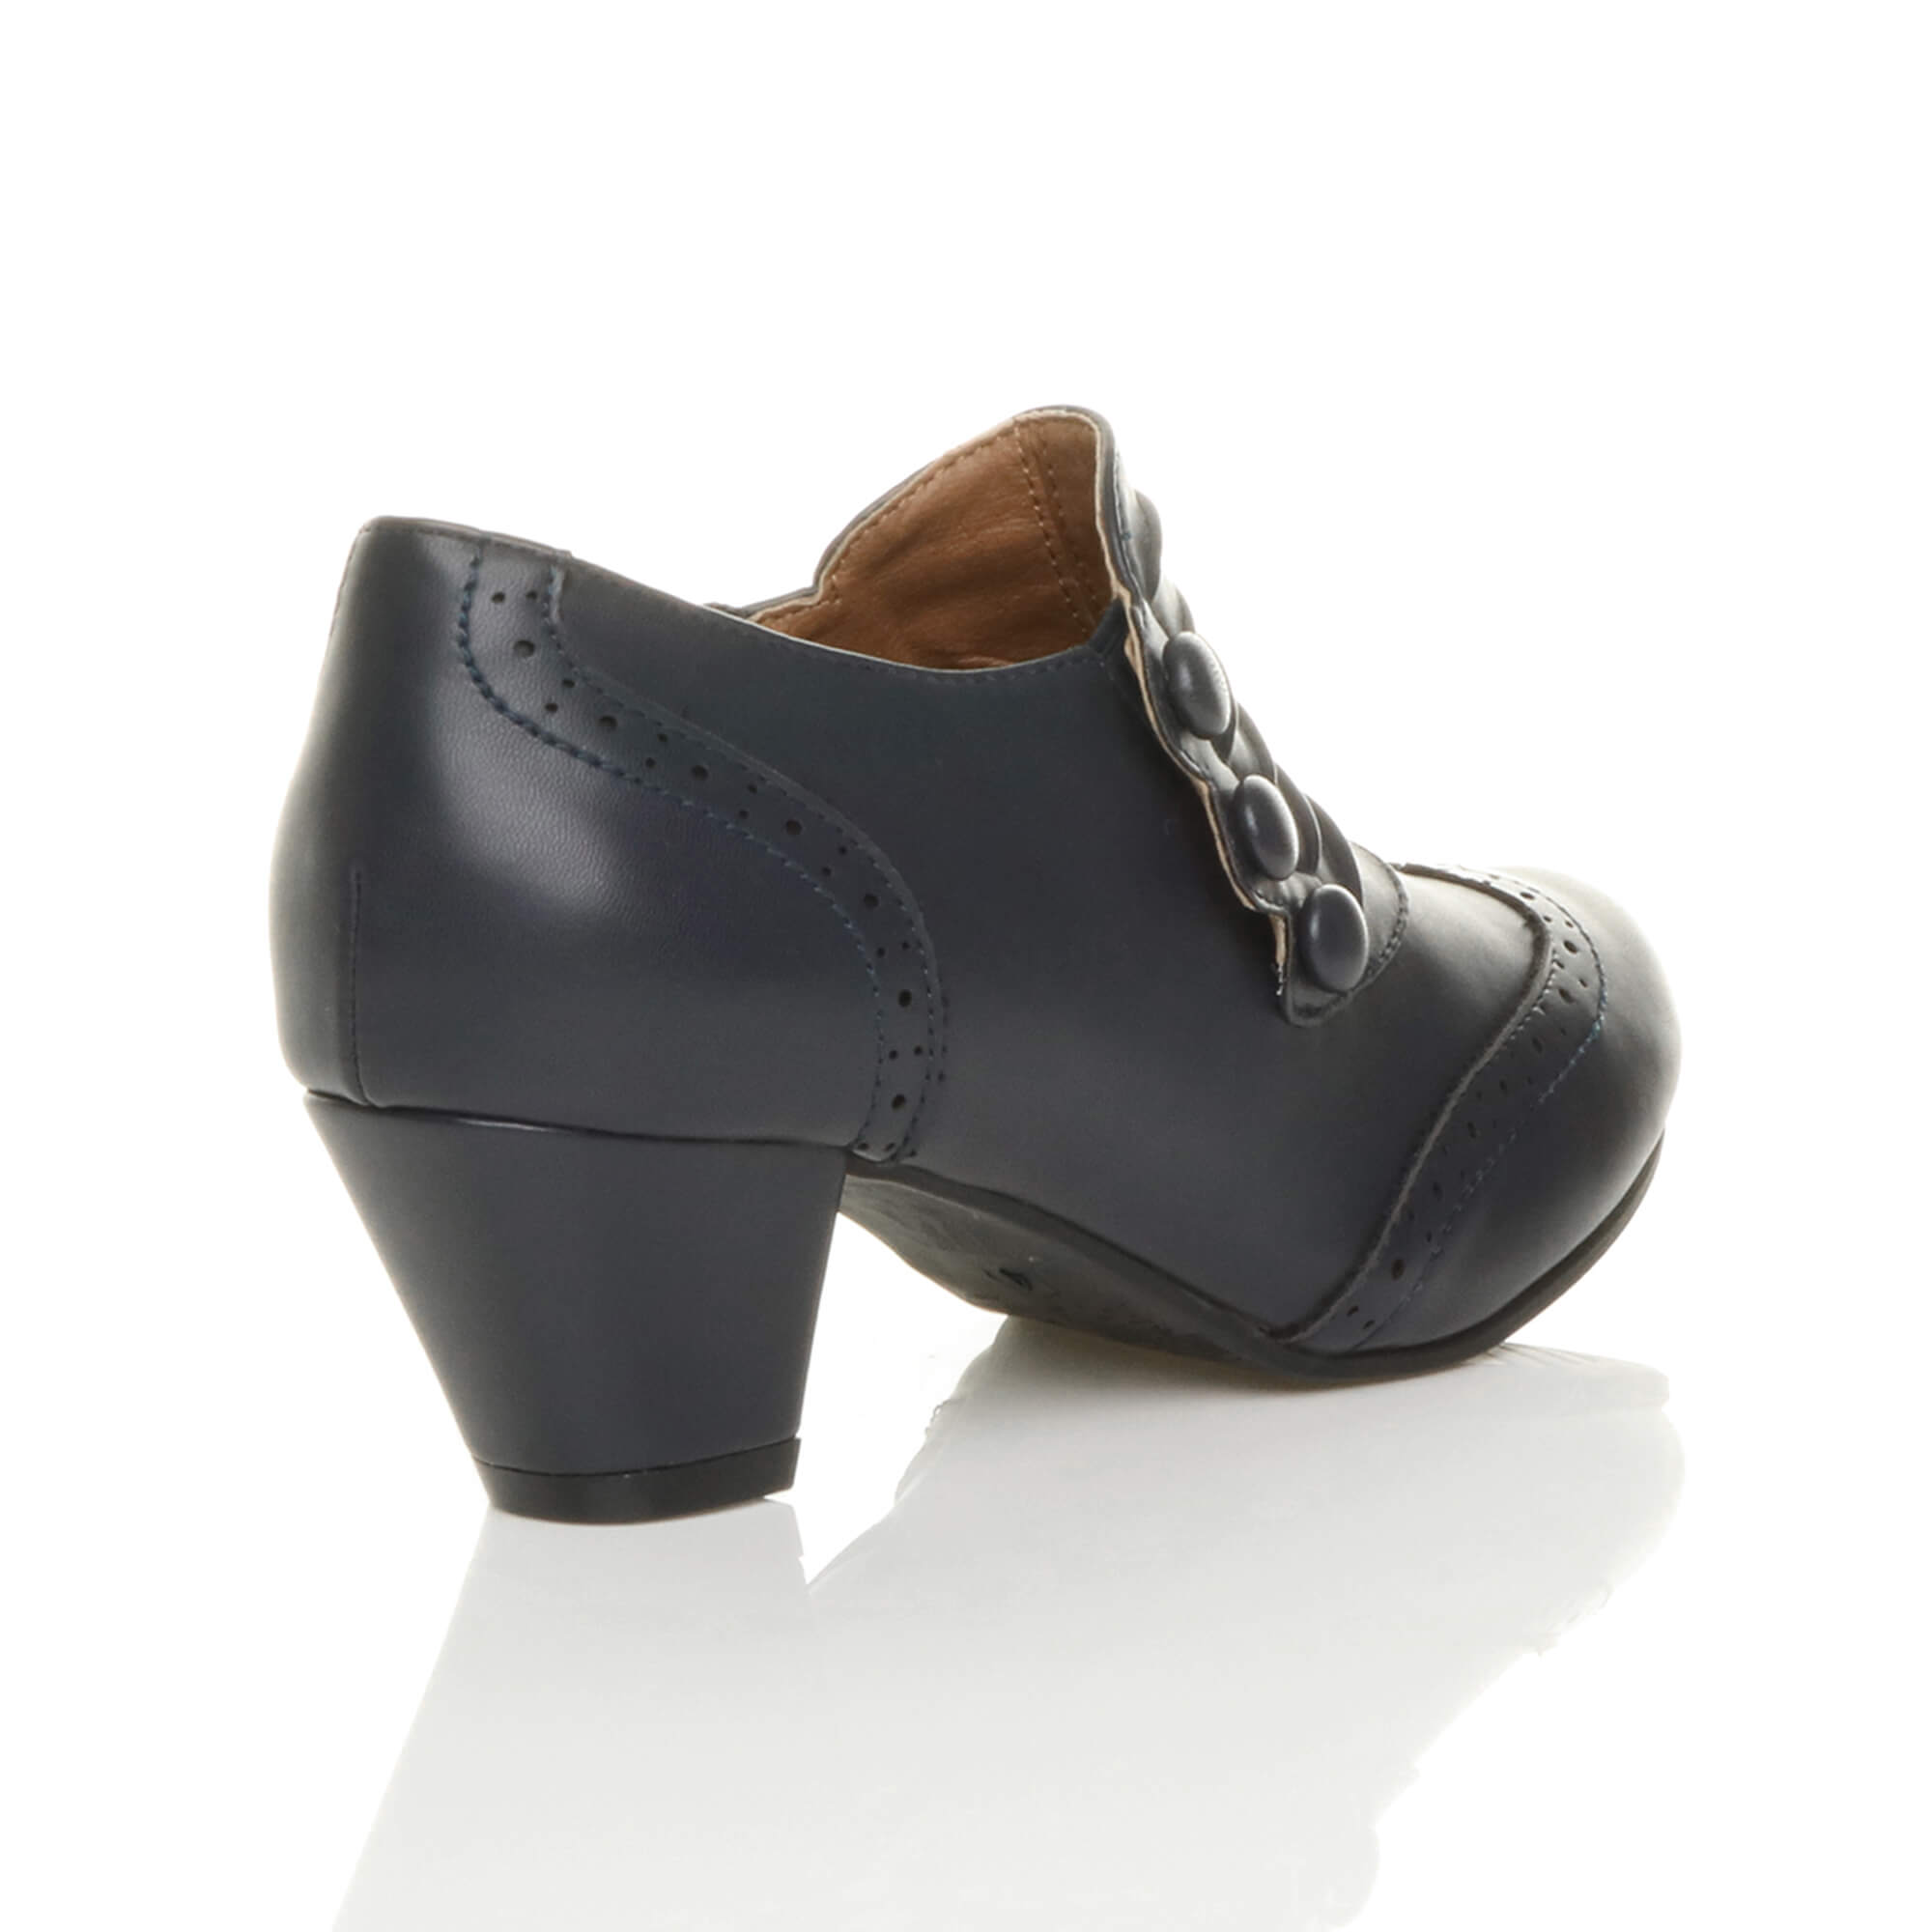 WOMENS-LADIES-MID-BLOCK-HEEL-BUTTON-ZIP-BROGUE-ANKLE-SHOE-BOOTS-BOOTIES-SIZE